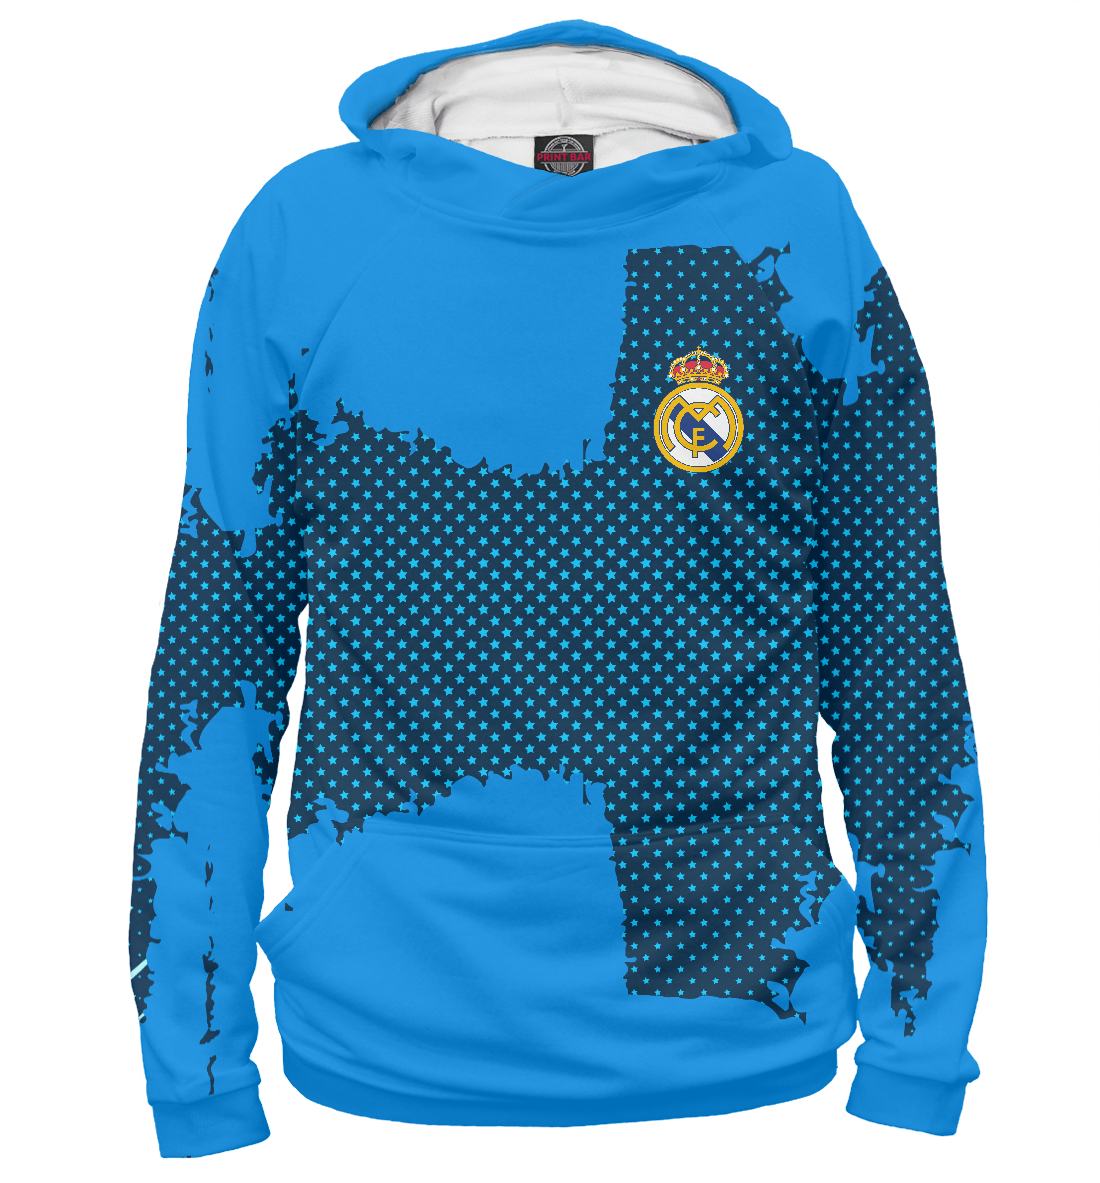 Купить Real Madrid sport uniform, Printbar, Худи, REA-857092-hud-1